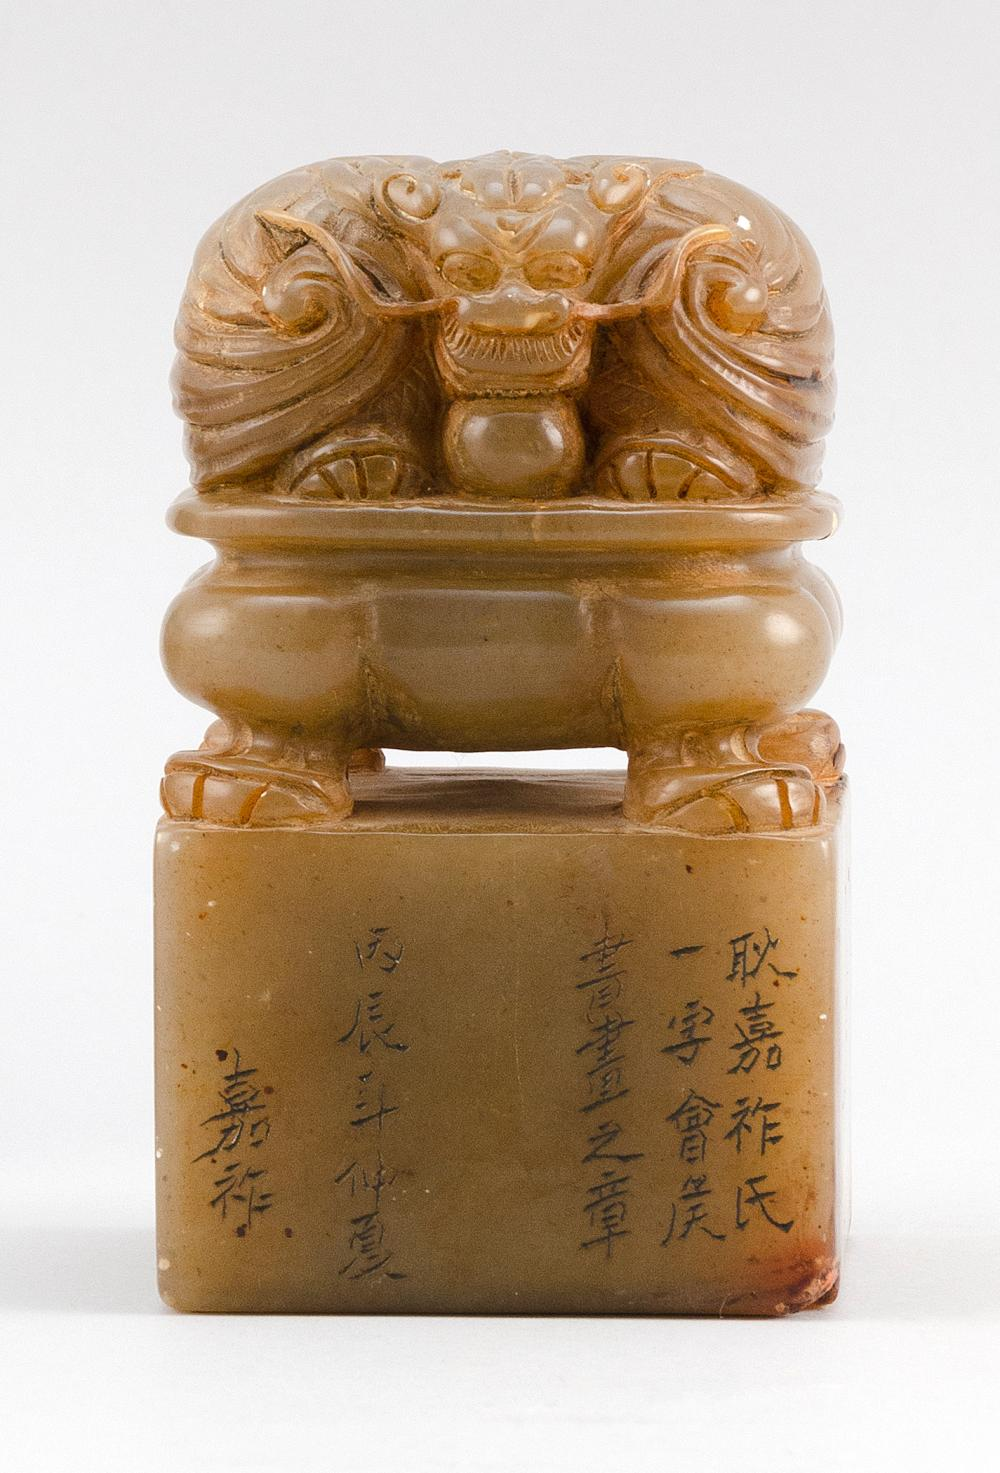 LARGE CHINESE GRAY/GREEN JADE CARVED SEAL In the form of a crouching dragon-like creature guarding a pearl, resting on a square base...